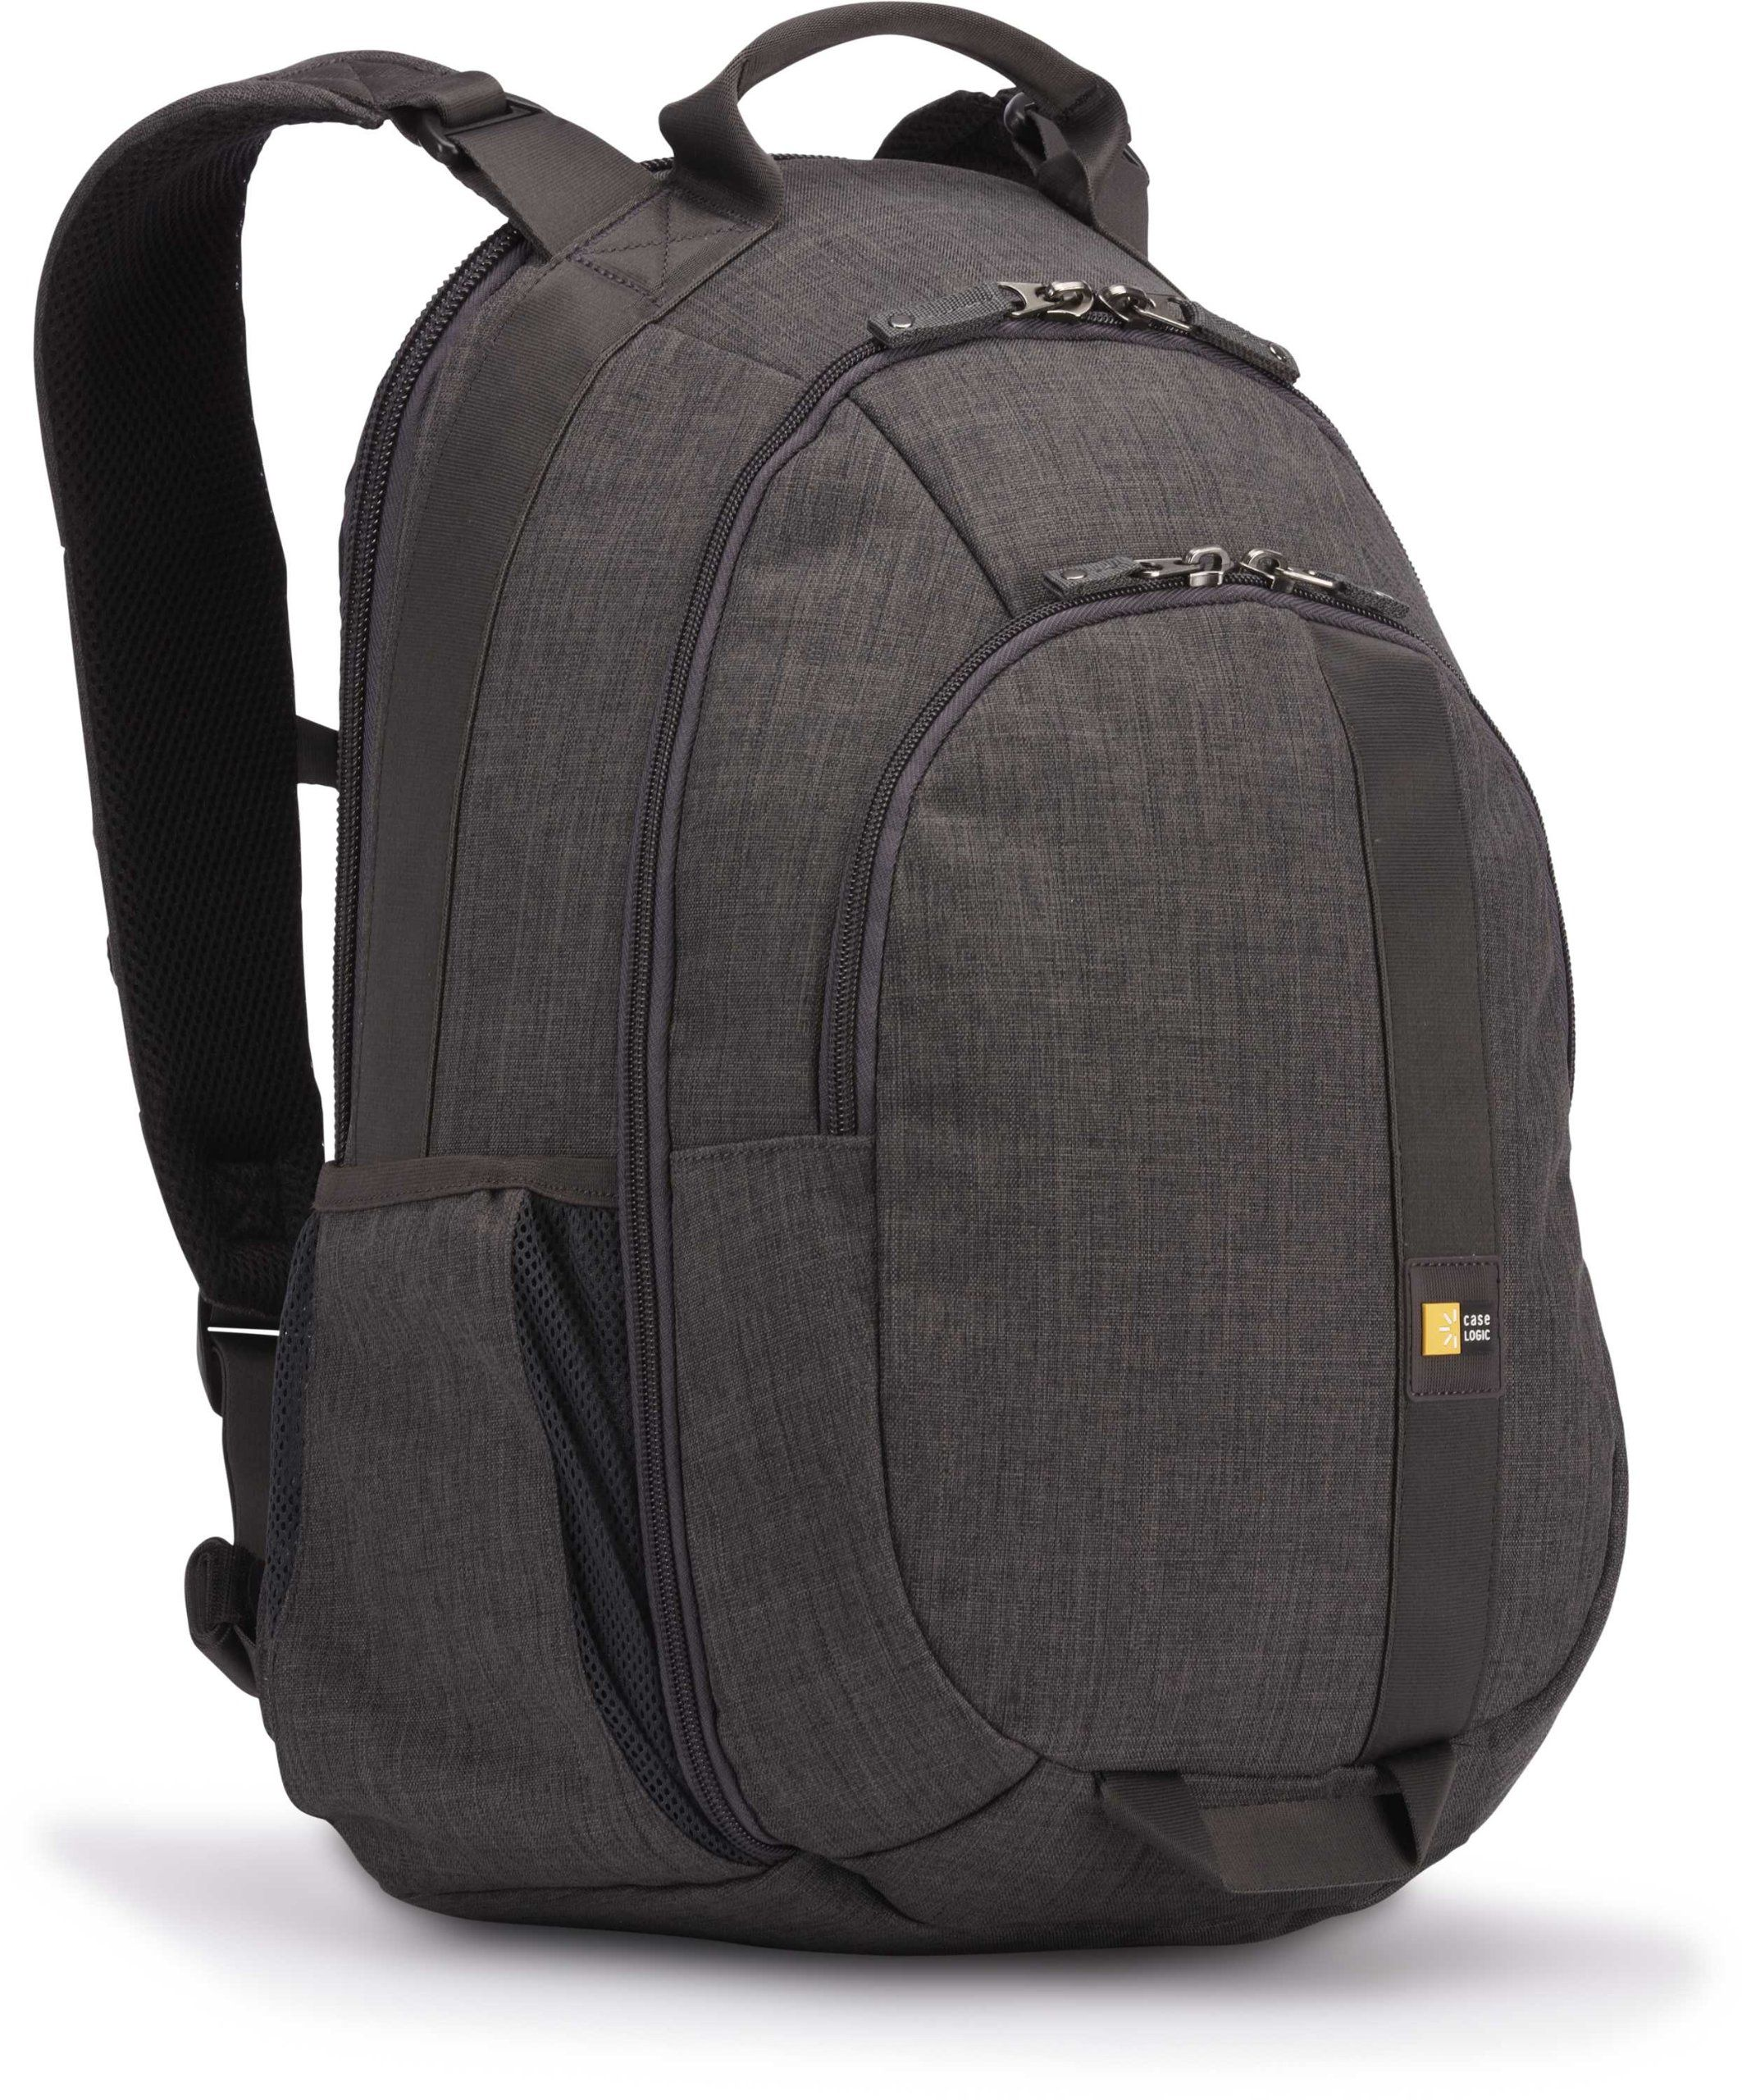 2e16081254 Amazon.com  Case Logic Berkeley BPCA-114 14-Inch Laptop Backpack  (Anthracite)  Computers   Accessories  42 Maybe - still too big